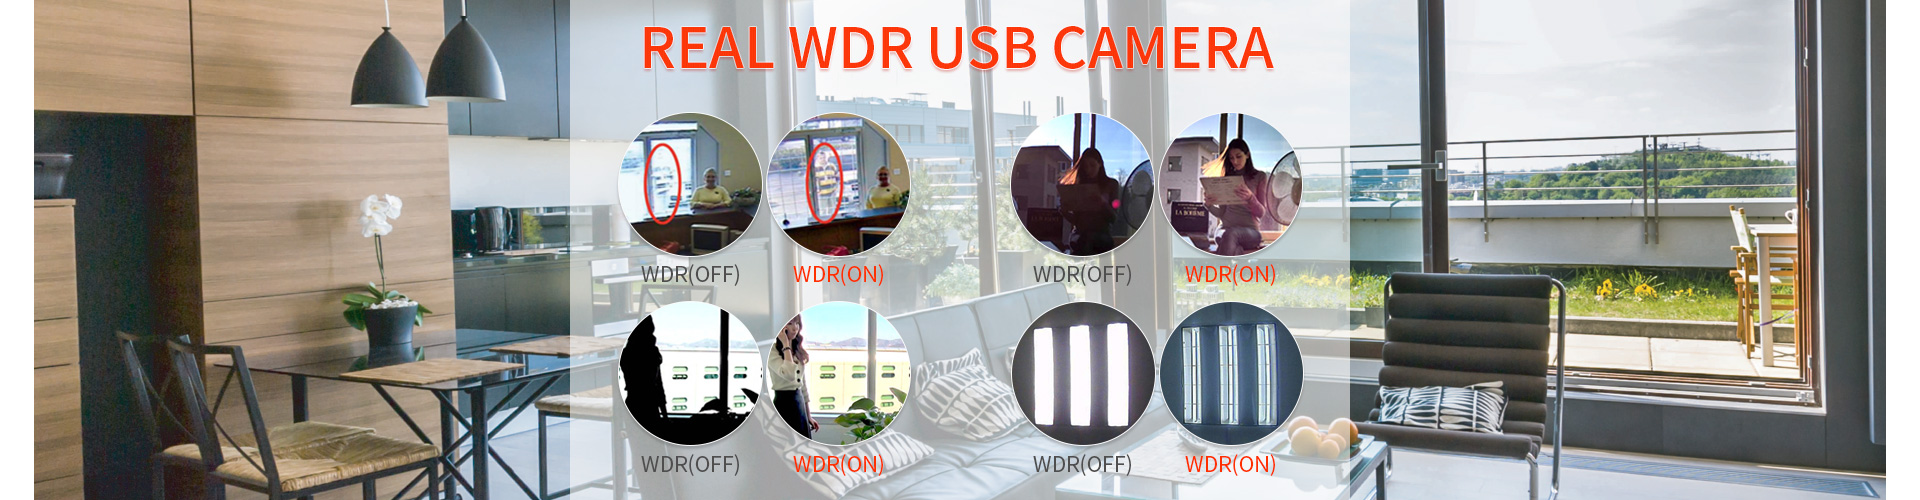 real wdr usb camera